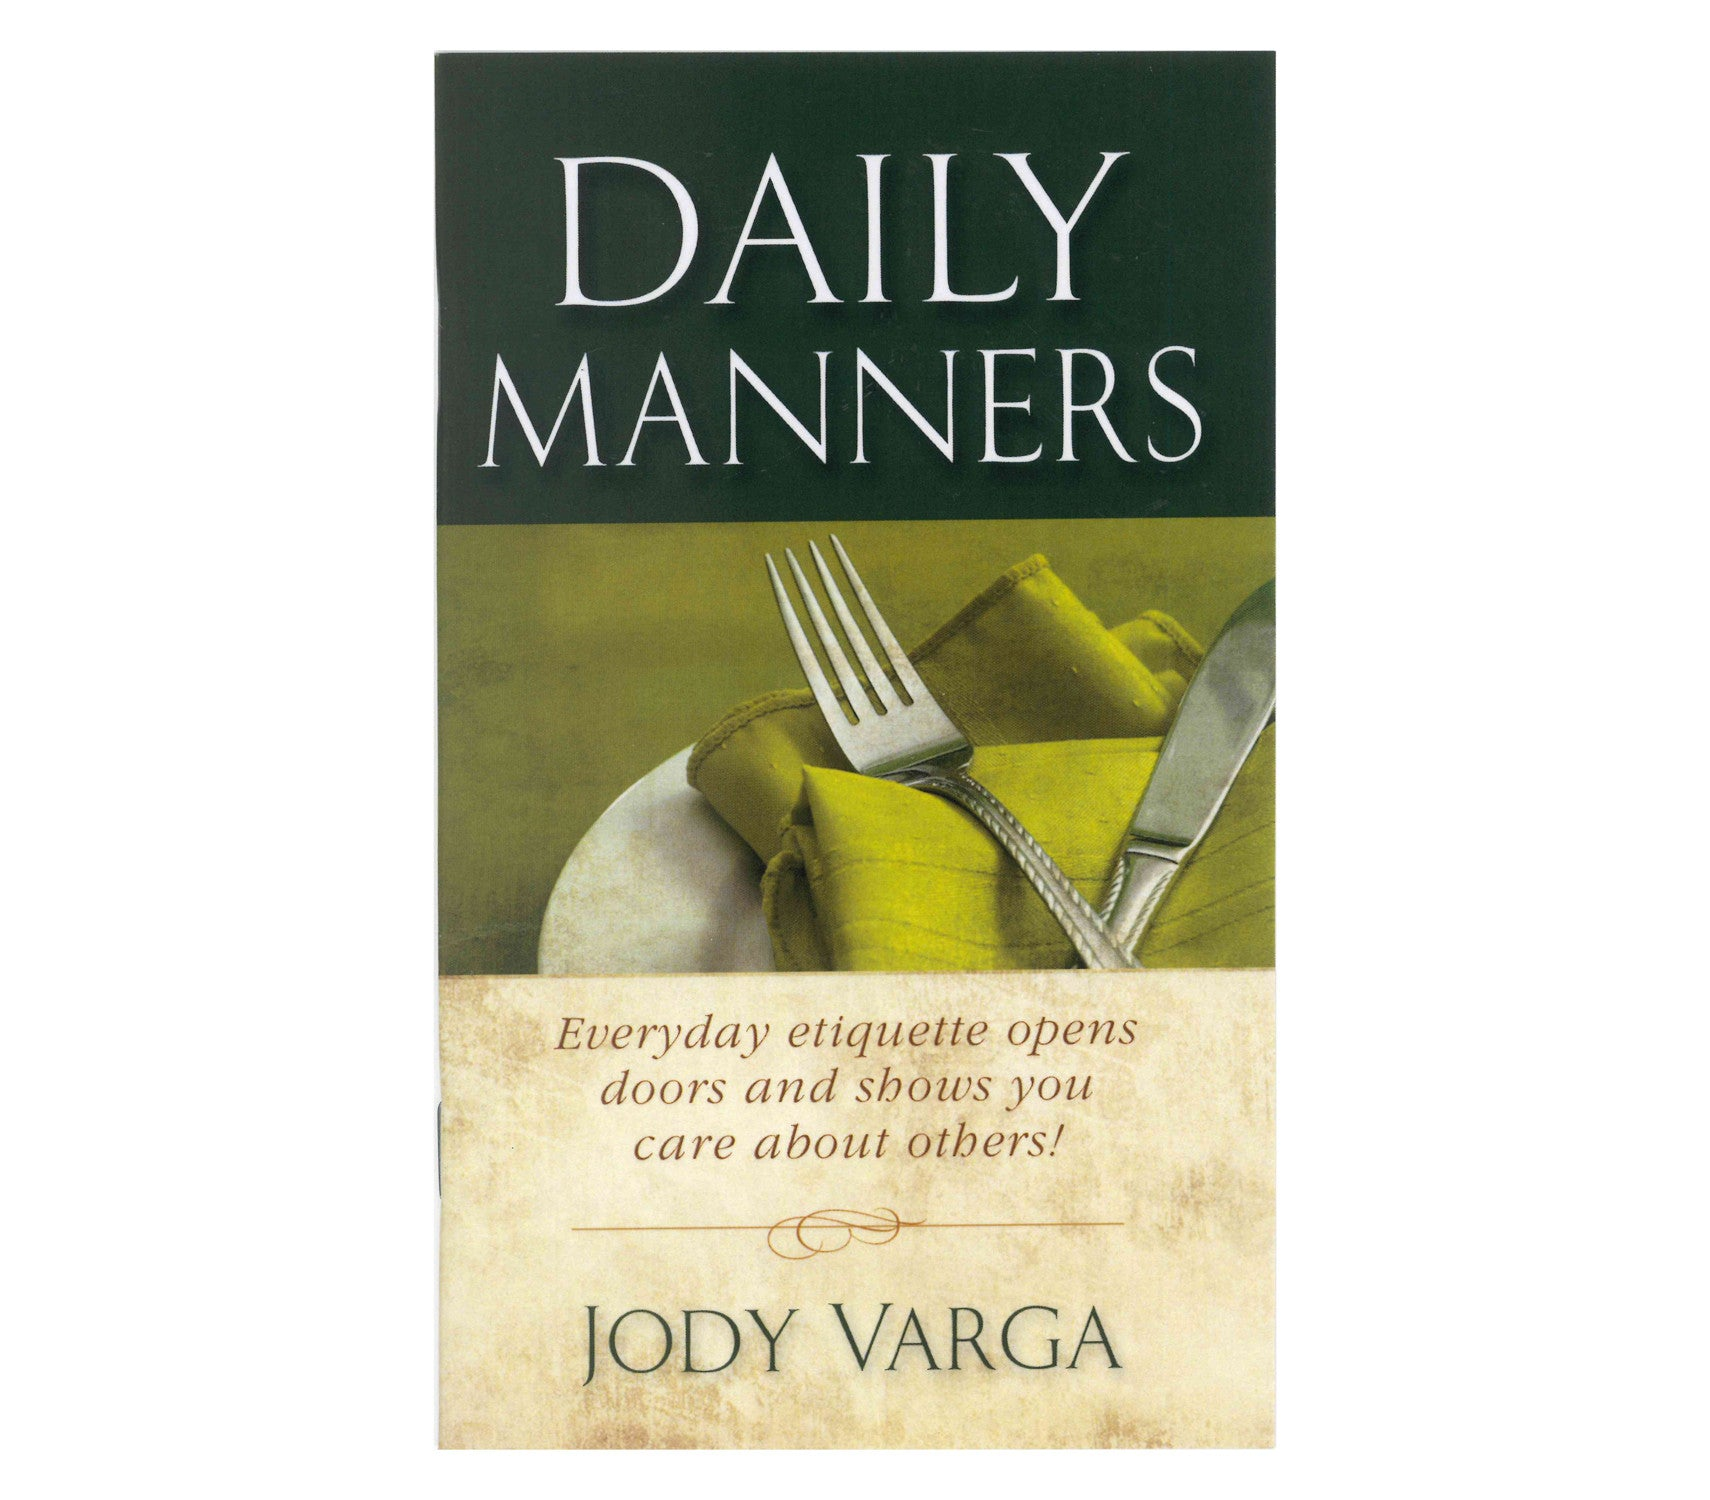 Daily Manners